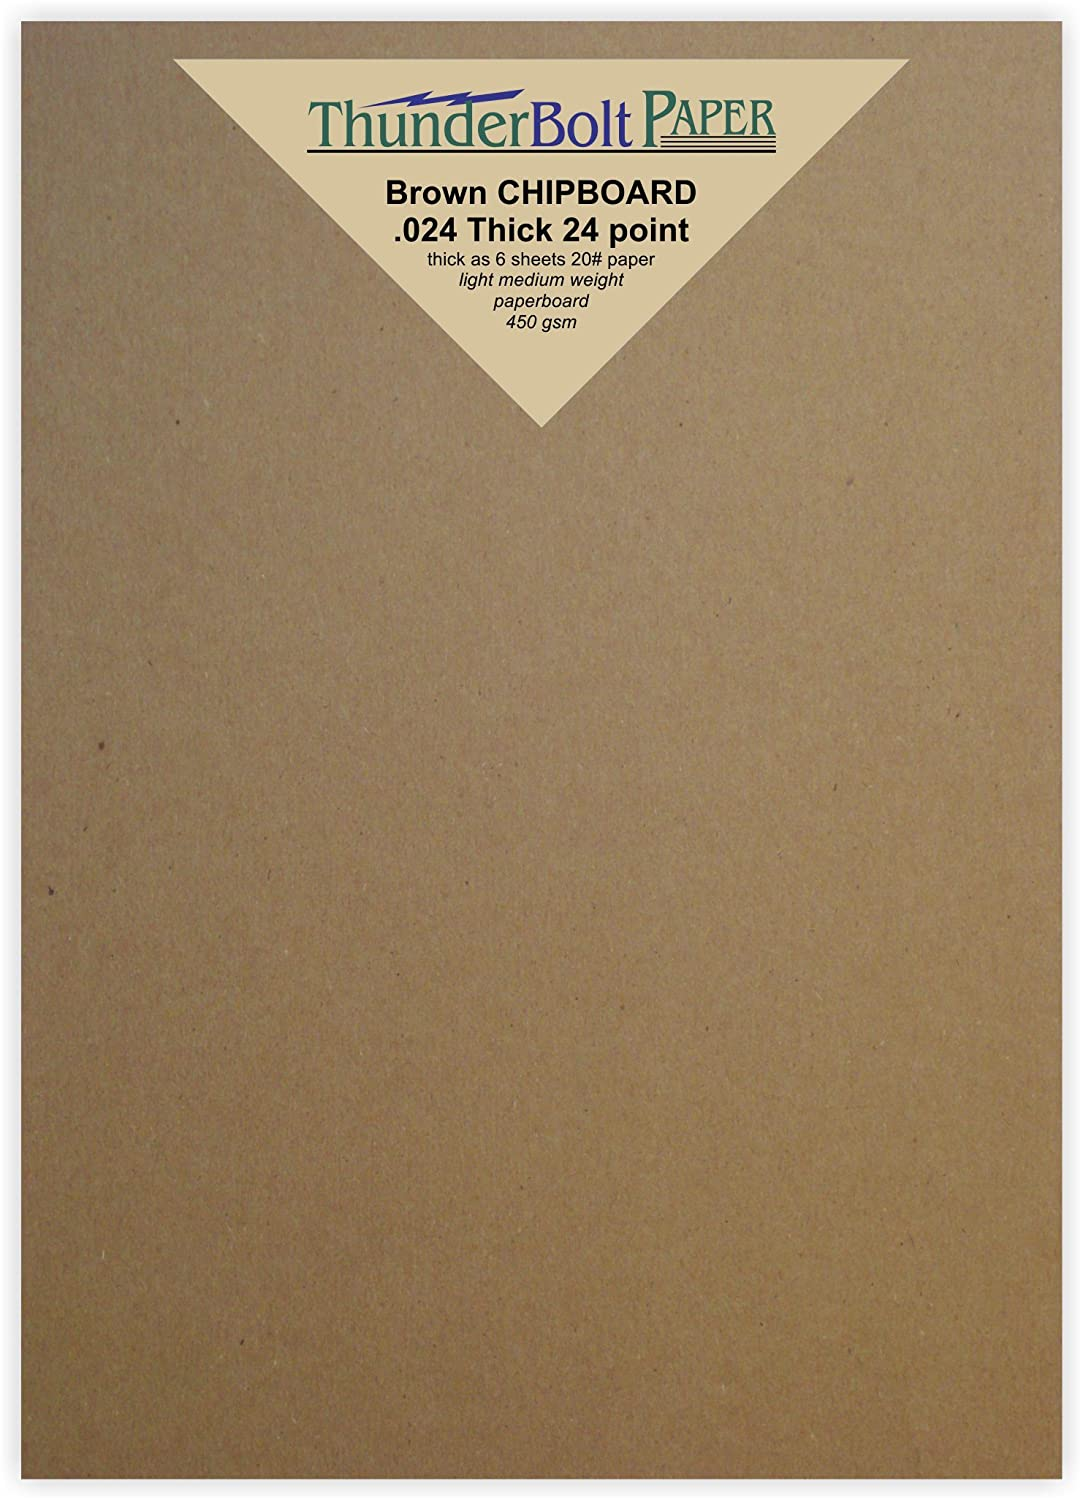 100 Sheets Chipboard 24pt (point) 4.5 X 6.5 Inches Light Medium Weight Fits in 5X7 Invitation Size .024 Caliper Thick Cardboard Craft Packaging Brown Kraft Paper Board TBP 4336978453